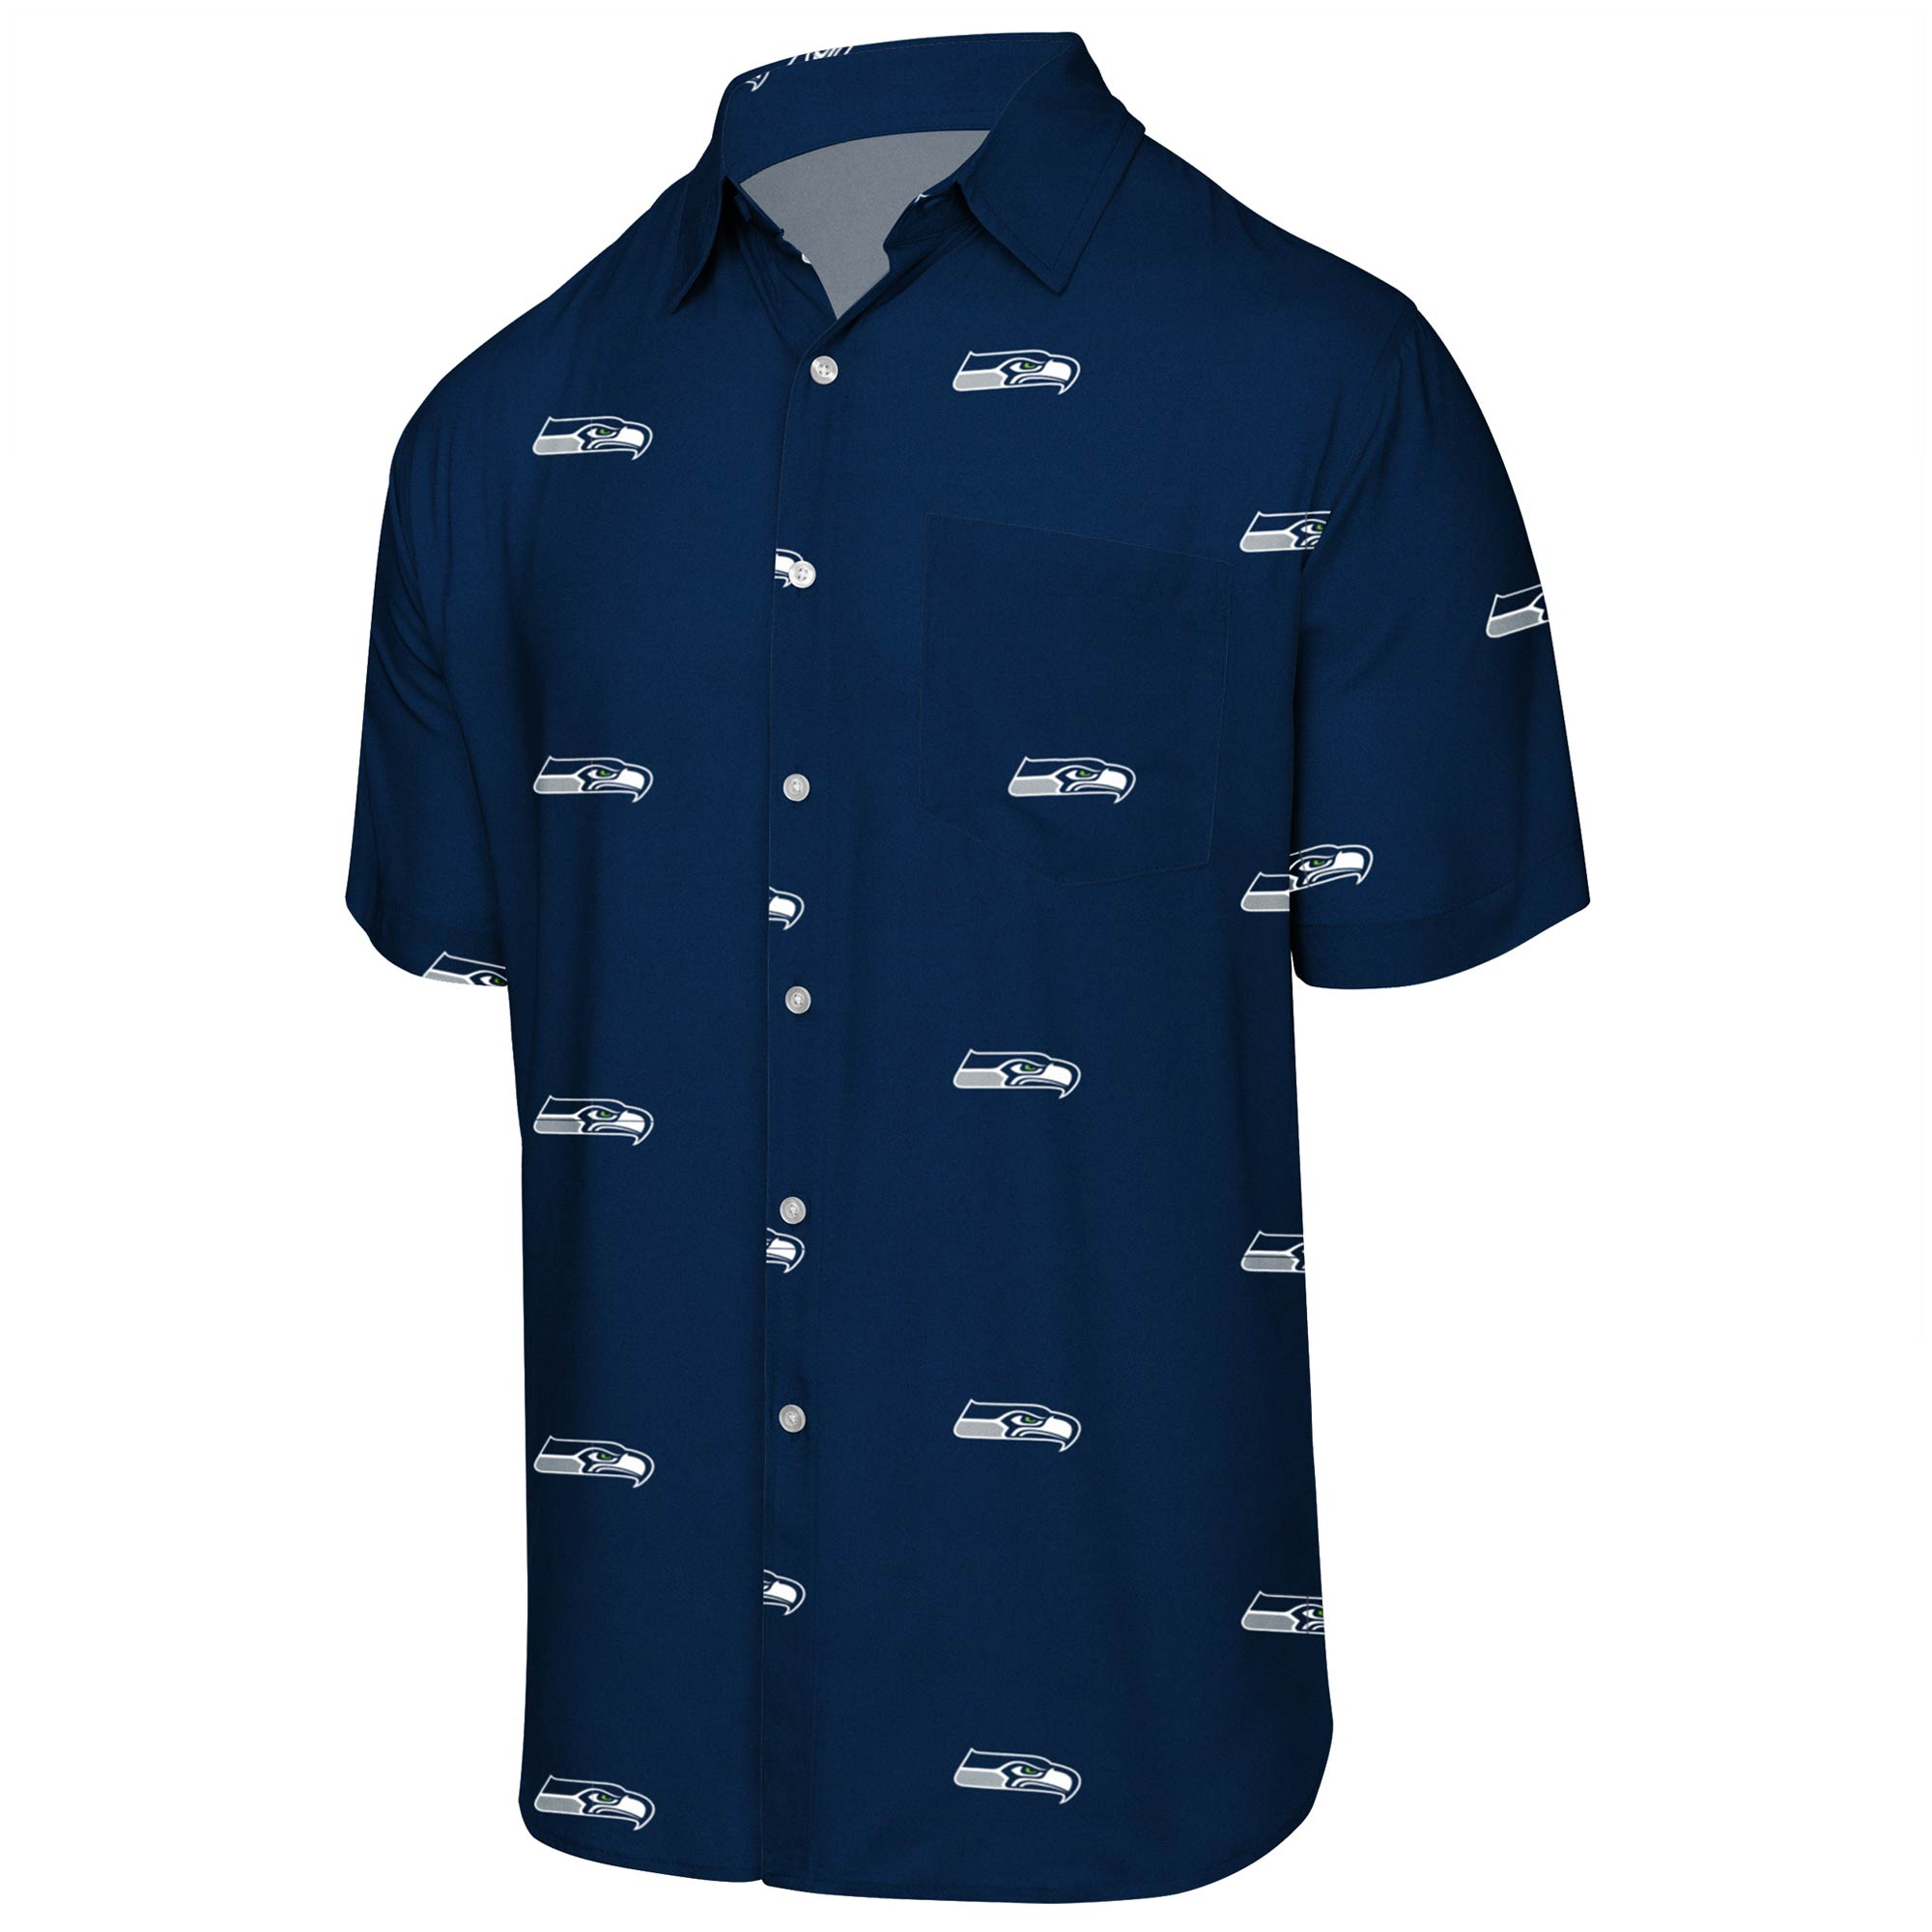 Seattle Seahawks Mini Print Logo Woven Button-Up Shirt - College Navy